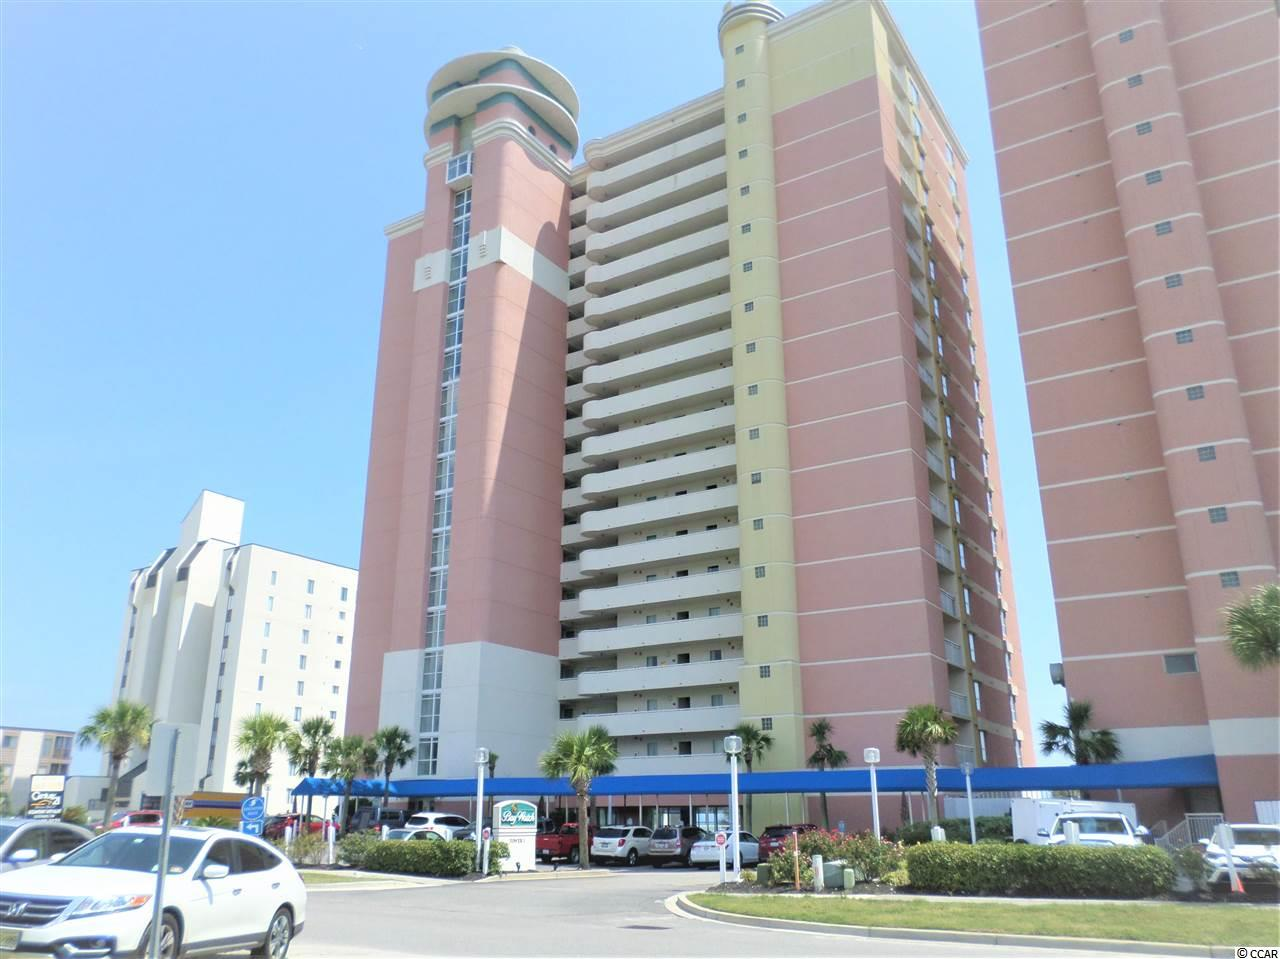 This is very well kept and upgraded penthouse unit with new carpet in bedroom and tile in living room. Turn key condition. Fantastic views of the ocean. Baywatch Resort features lazy rivers, restaurant, several pools. Great family vacation place close to shopping and restaurants.